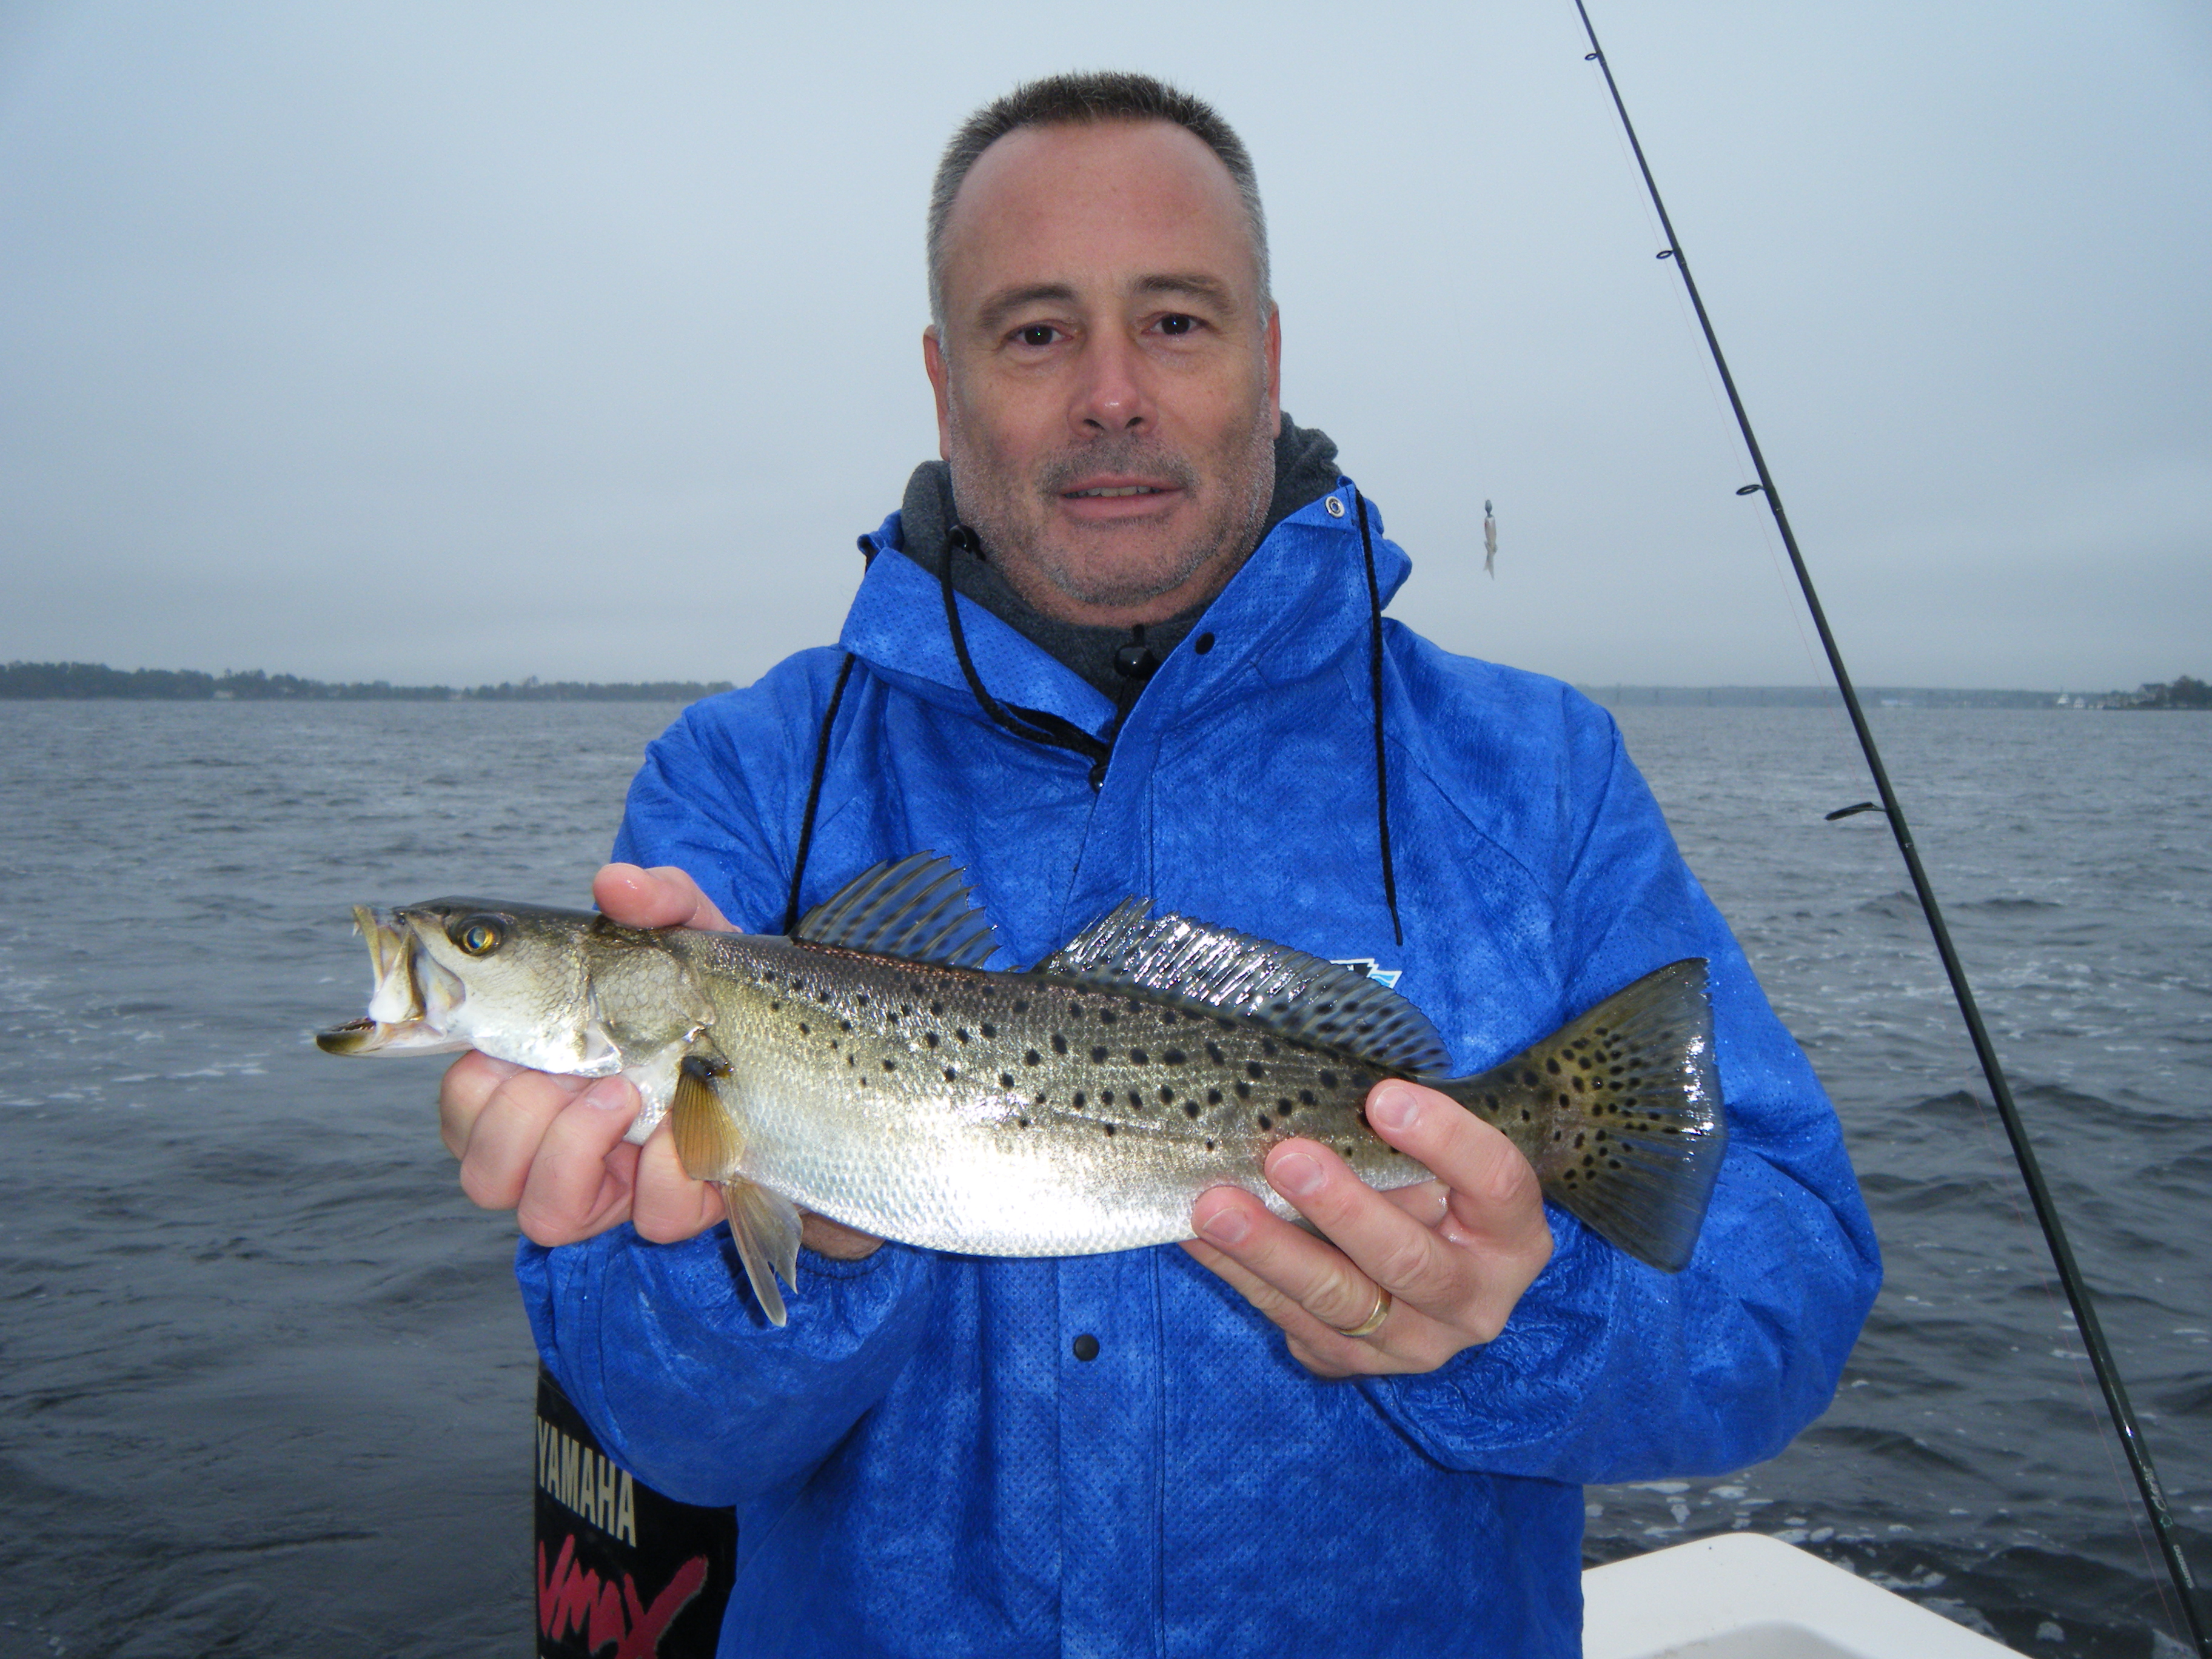 Tar pam guide service pamlico and pungo river fishing for Striped bass fishing reports